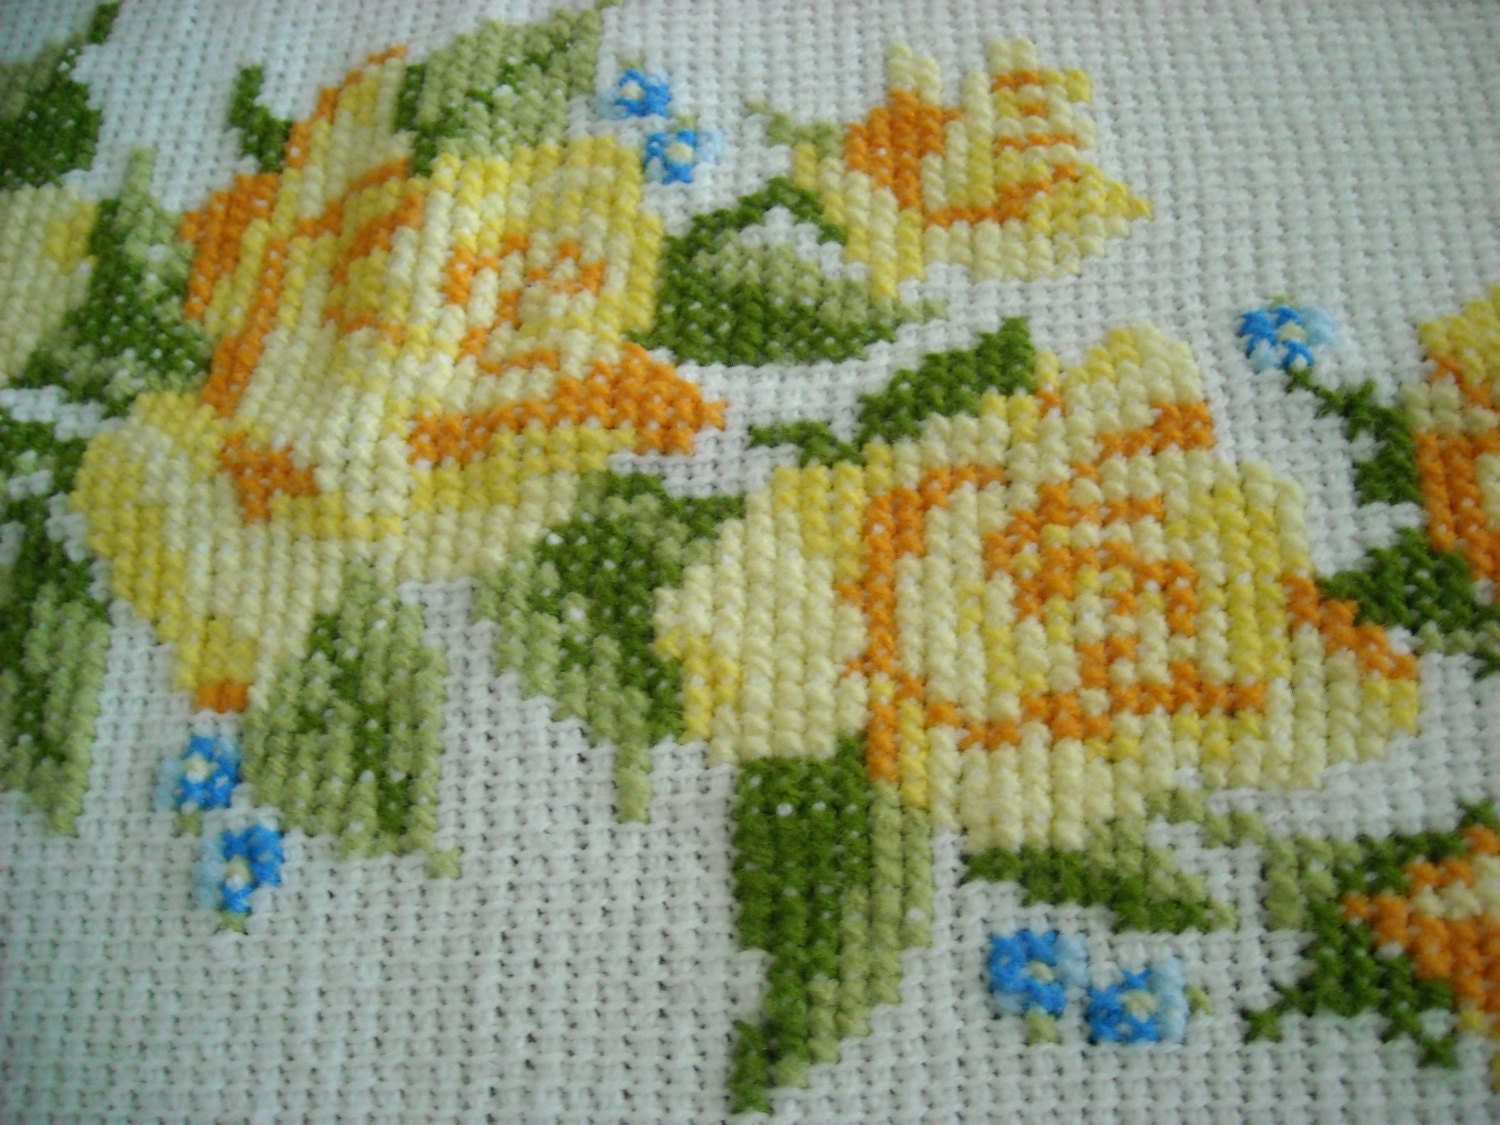 Knitting Cross Stitch Crochet : crocheted knit blanket with cross stitch yellow roses full